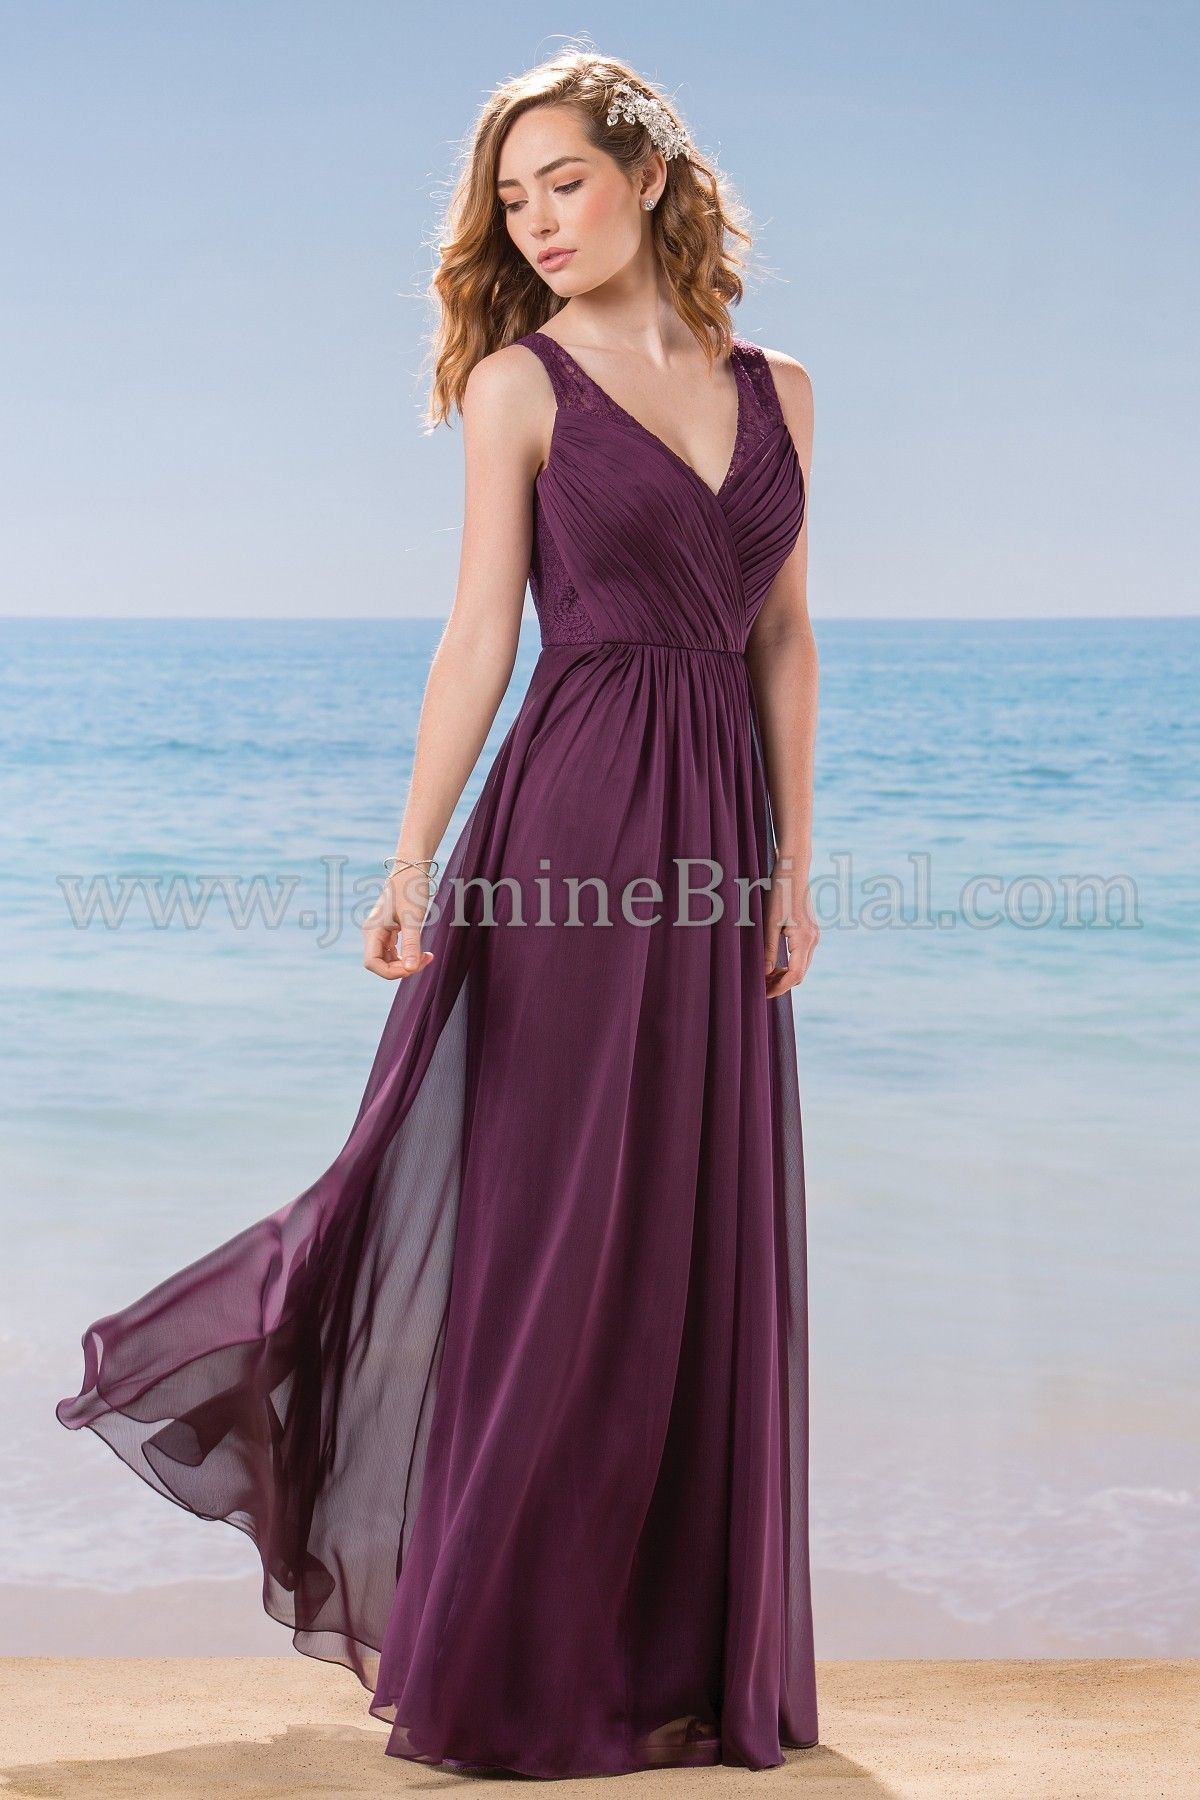 Jasmine bridal bridesmaid dress belsoie style l184016 in bordeaux jasmine bridal bridesmaid dress belsoie style l184016 in bordeaux purple ombrellifo Image collections